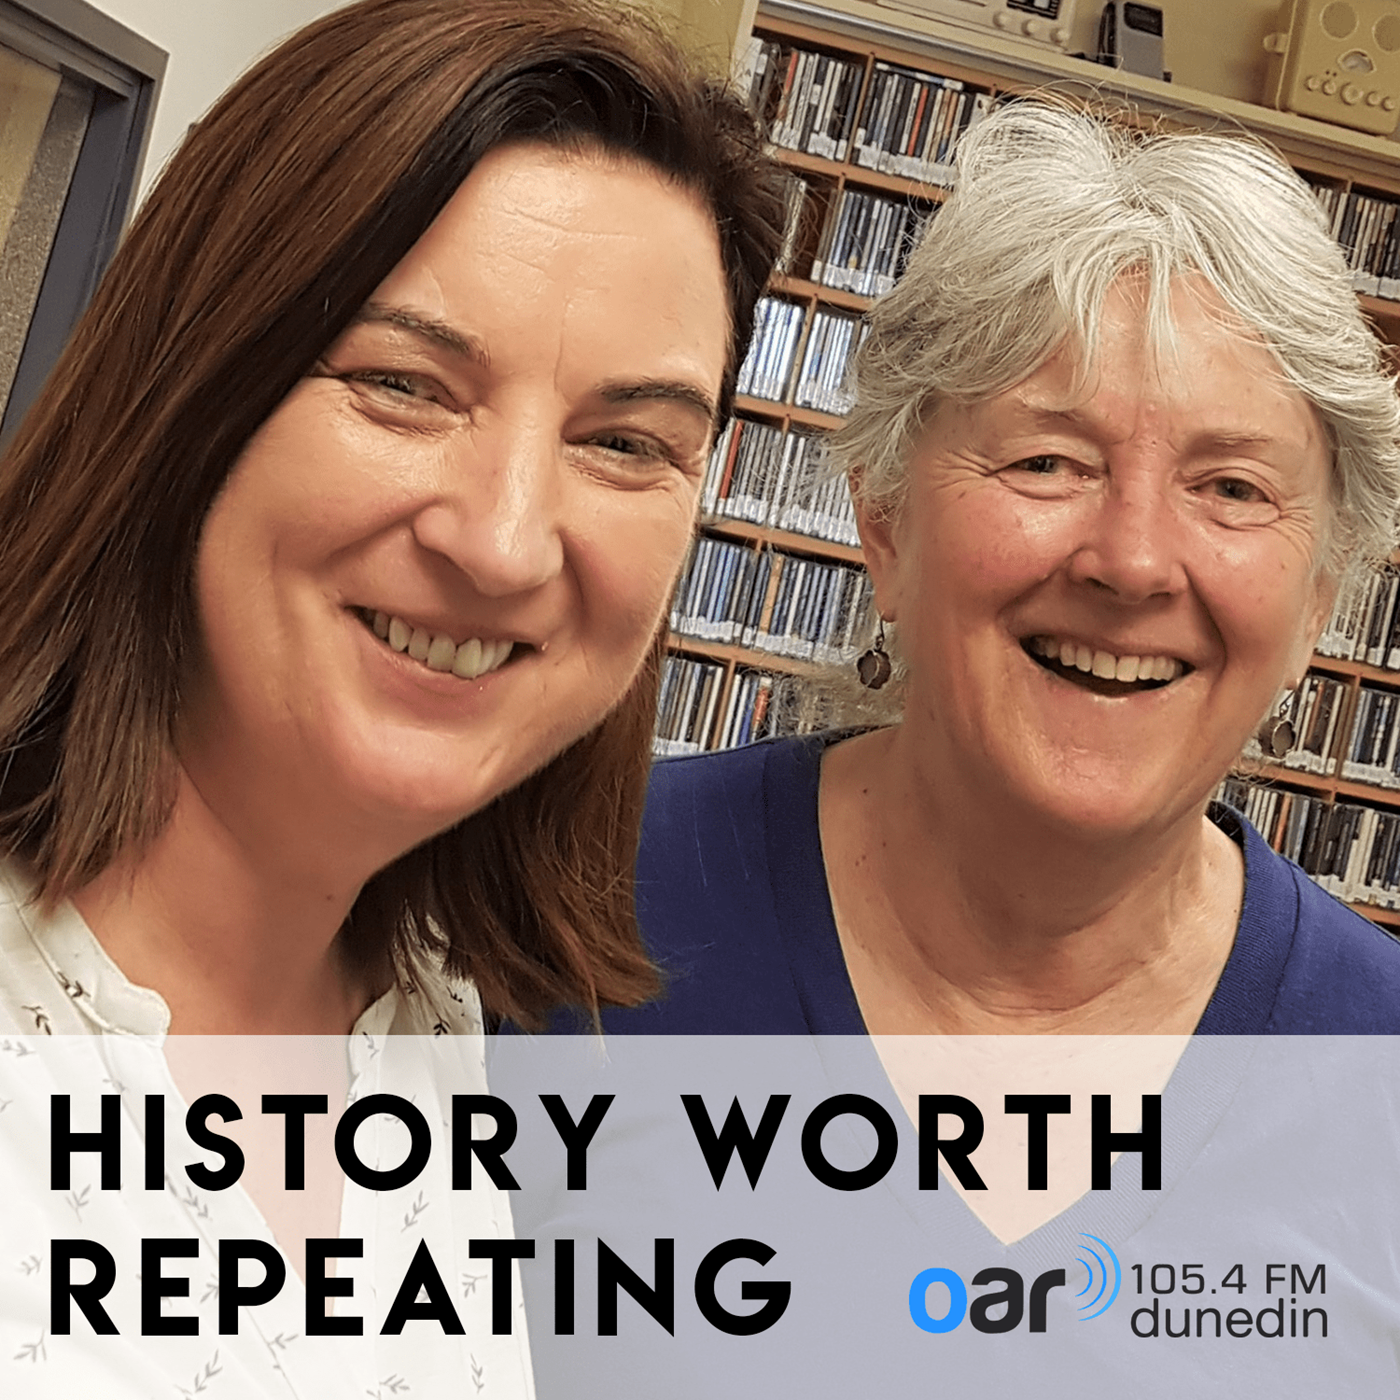 2020-04-04 - History Worth Repeating - History of Marriage - Show 03